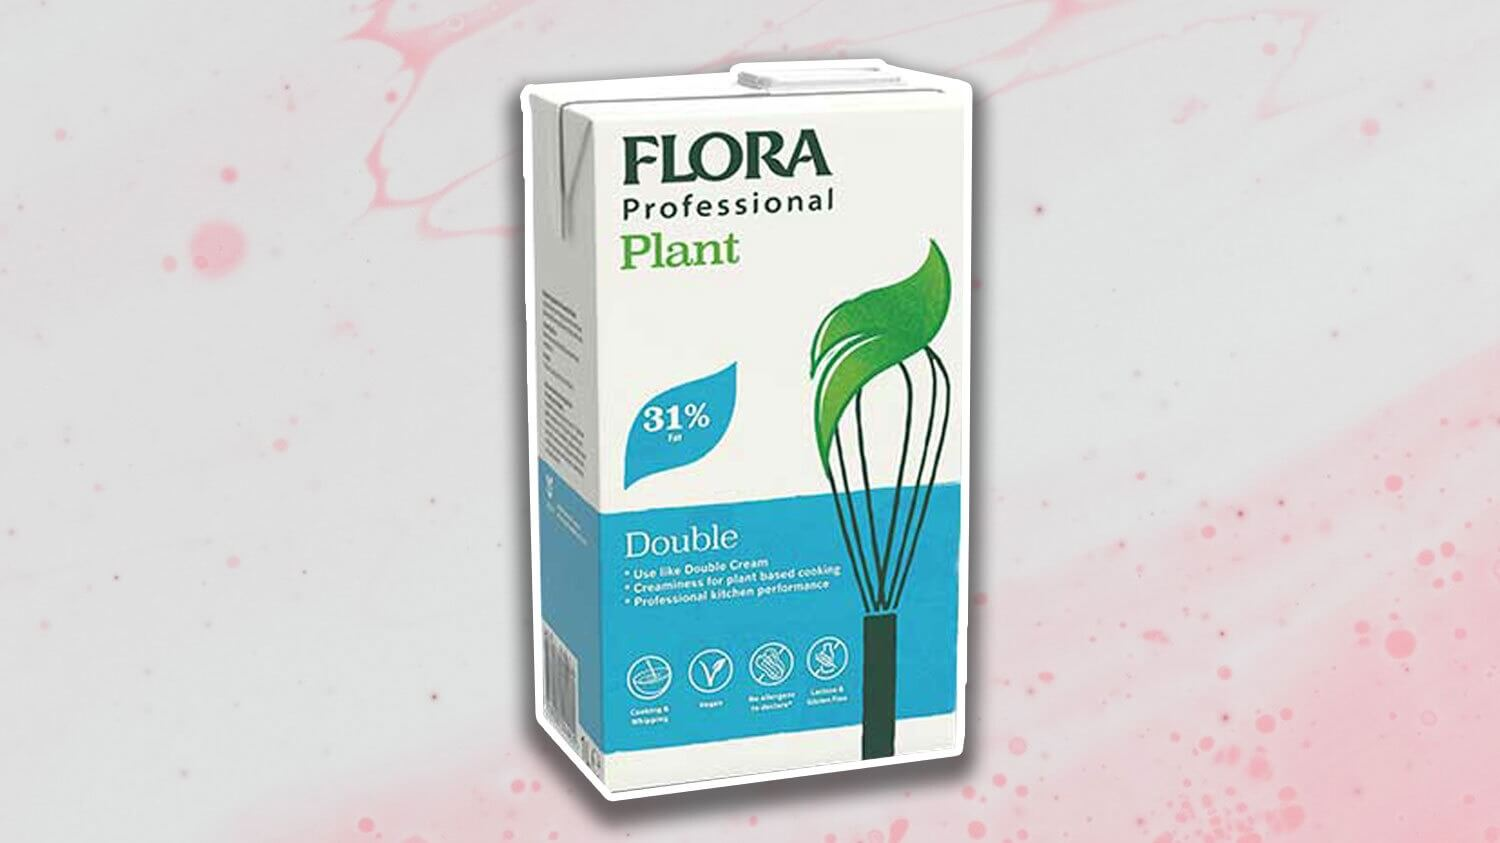 Flora Is Launching Vegan 'Double Cream' Made From Fava Beans